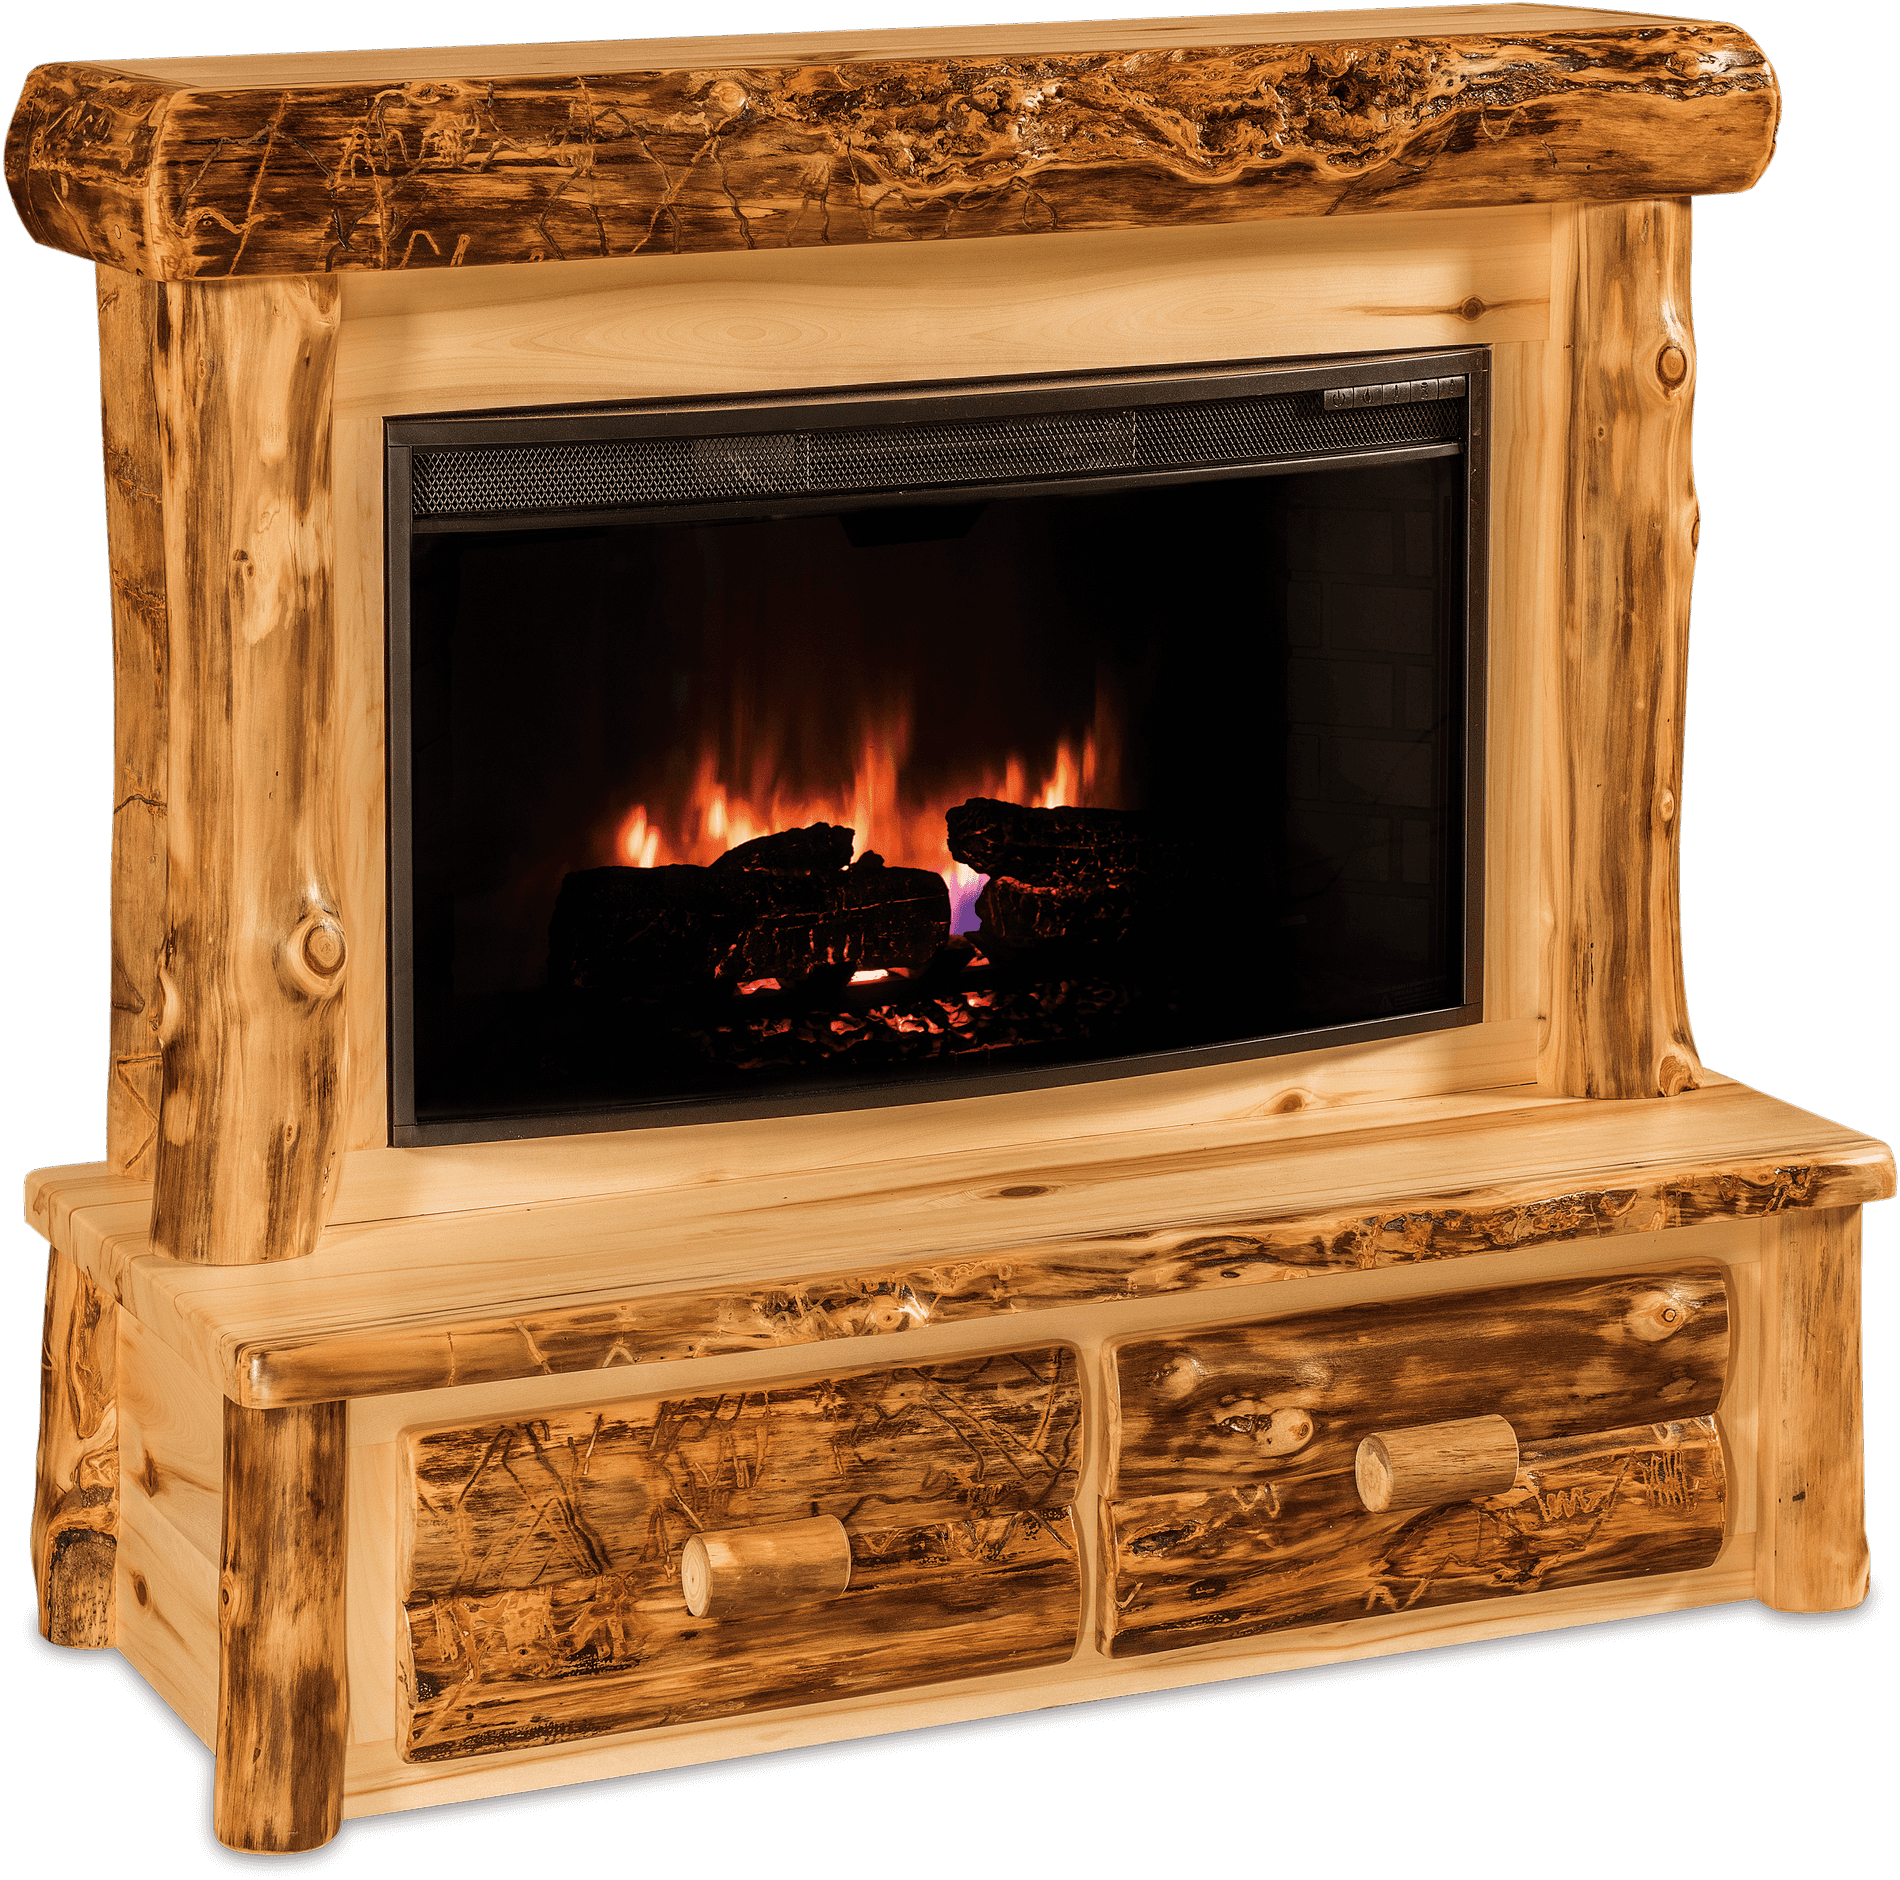 Fireplace Aspen Drws - R.D. Move In/Out Clean